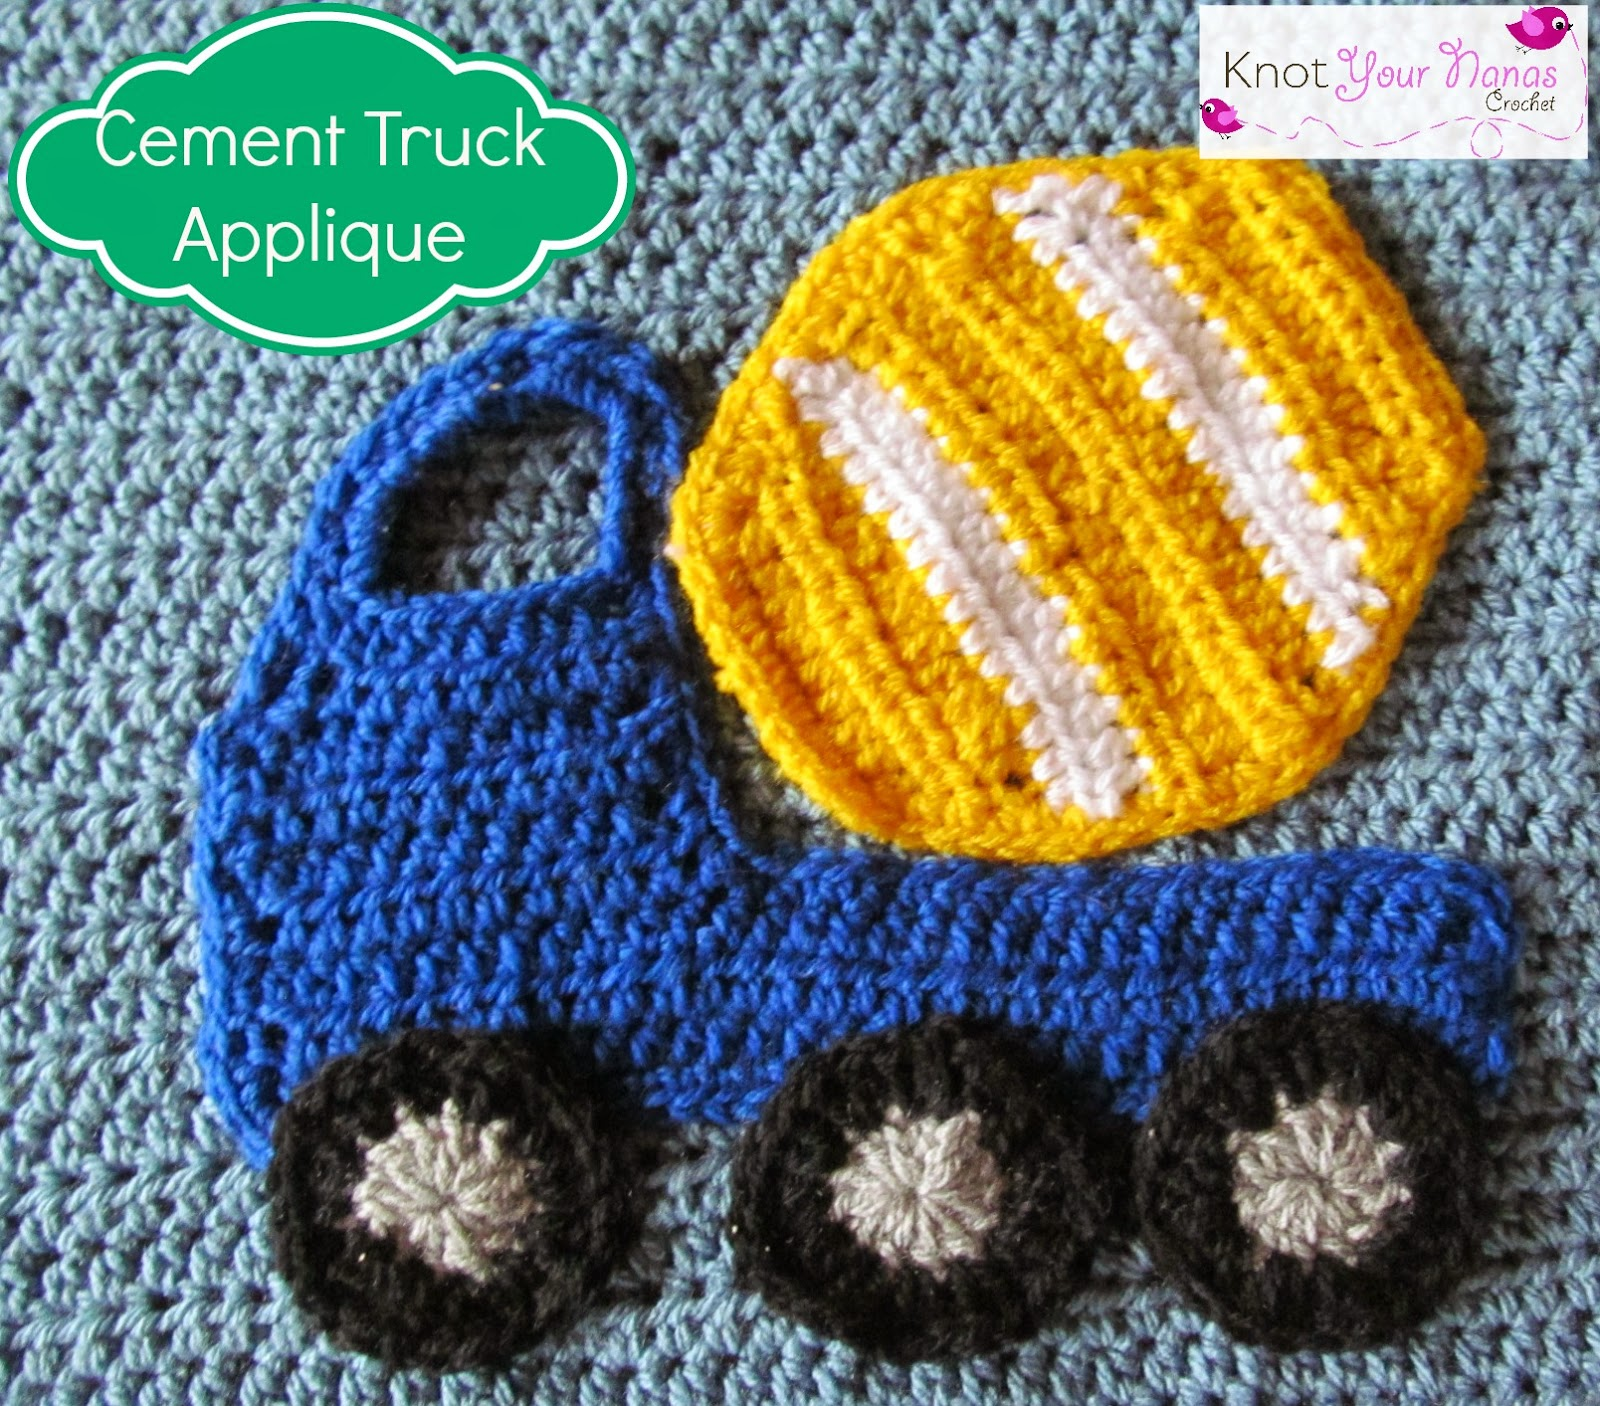 Crochet-Concrete-Mixer-or-Cement-Truck-Applique